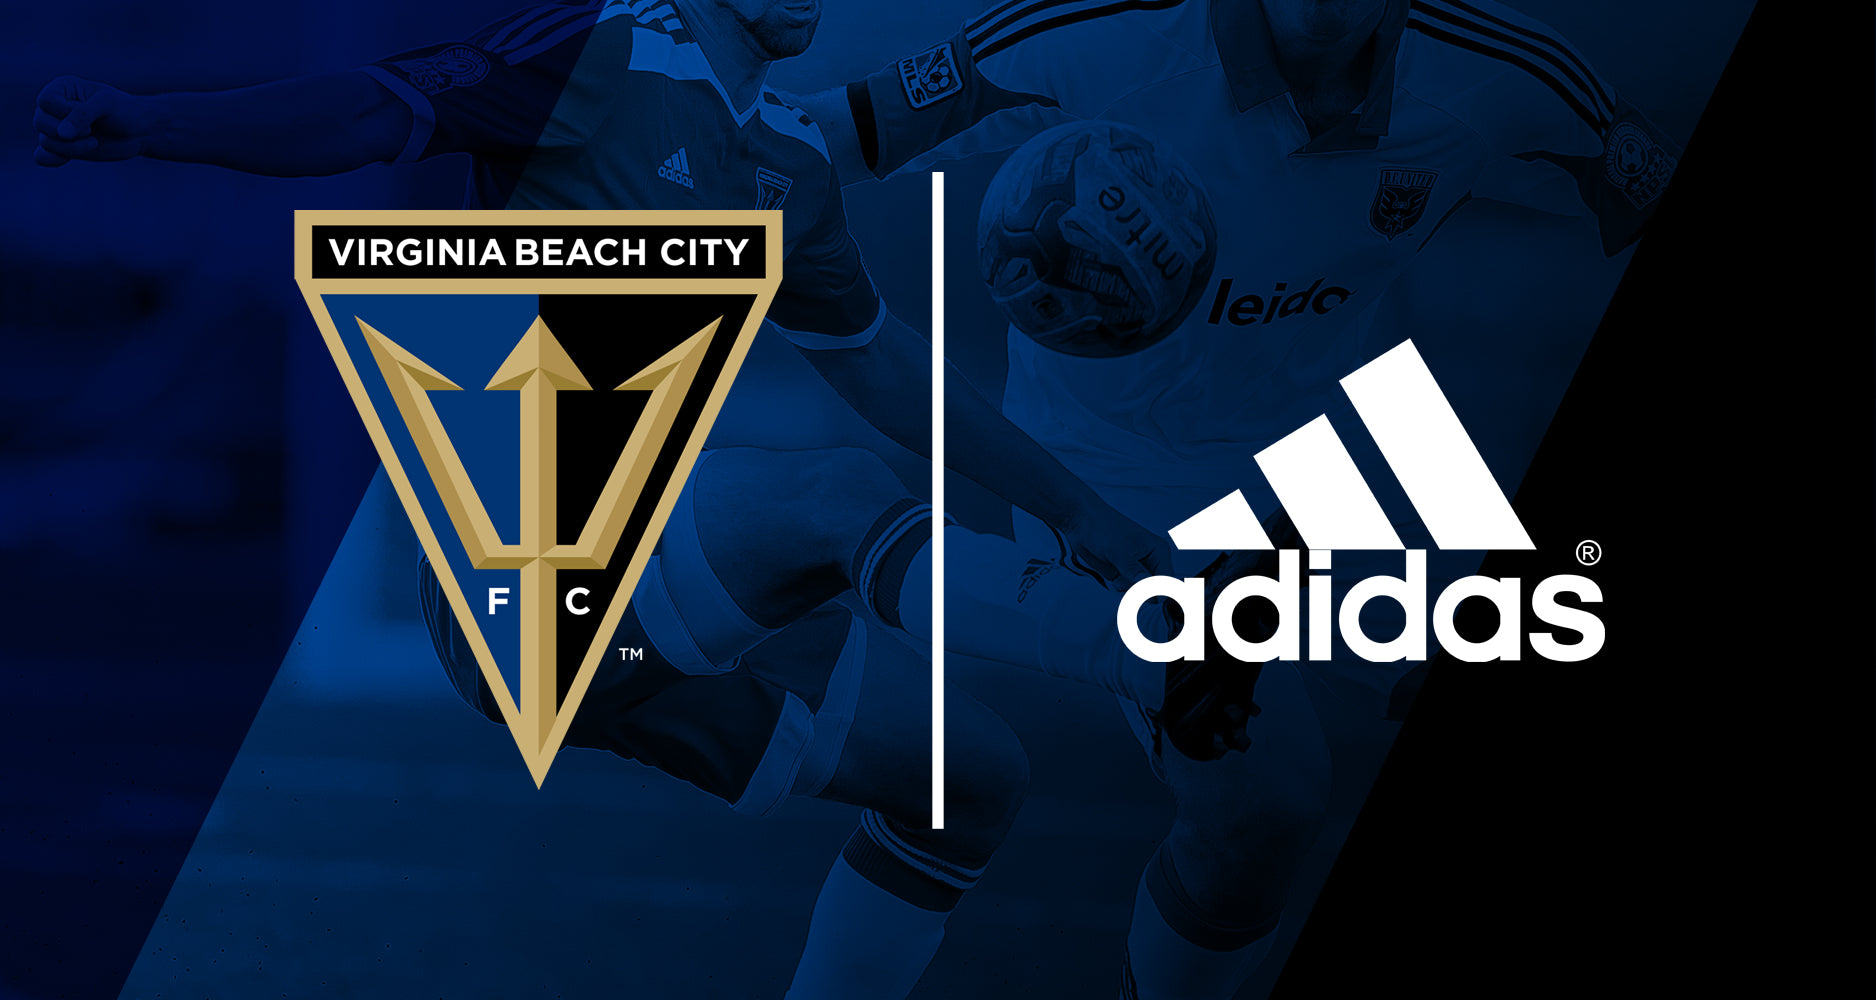 Virginia Beach City FC and Adidas Extend Partnership Through 2021